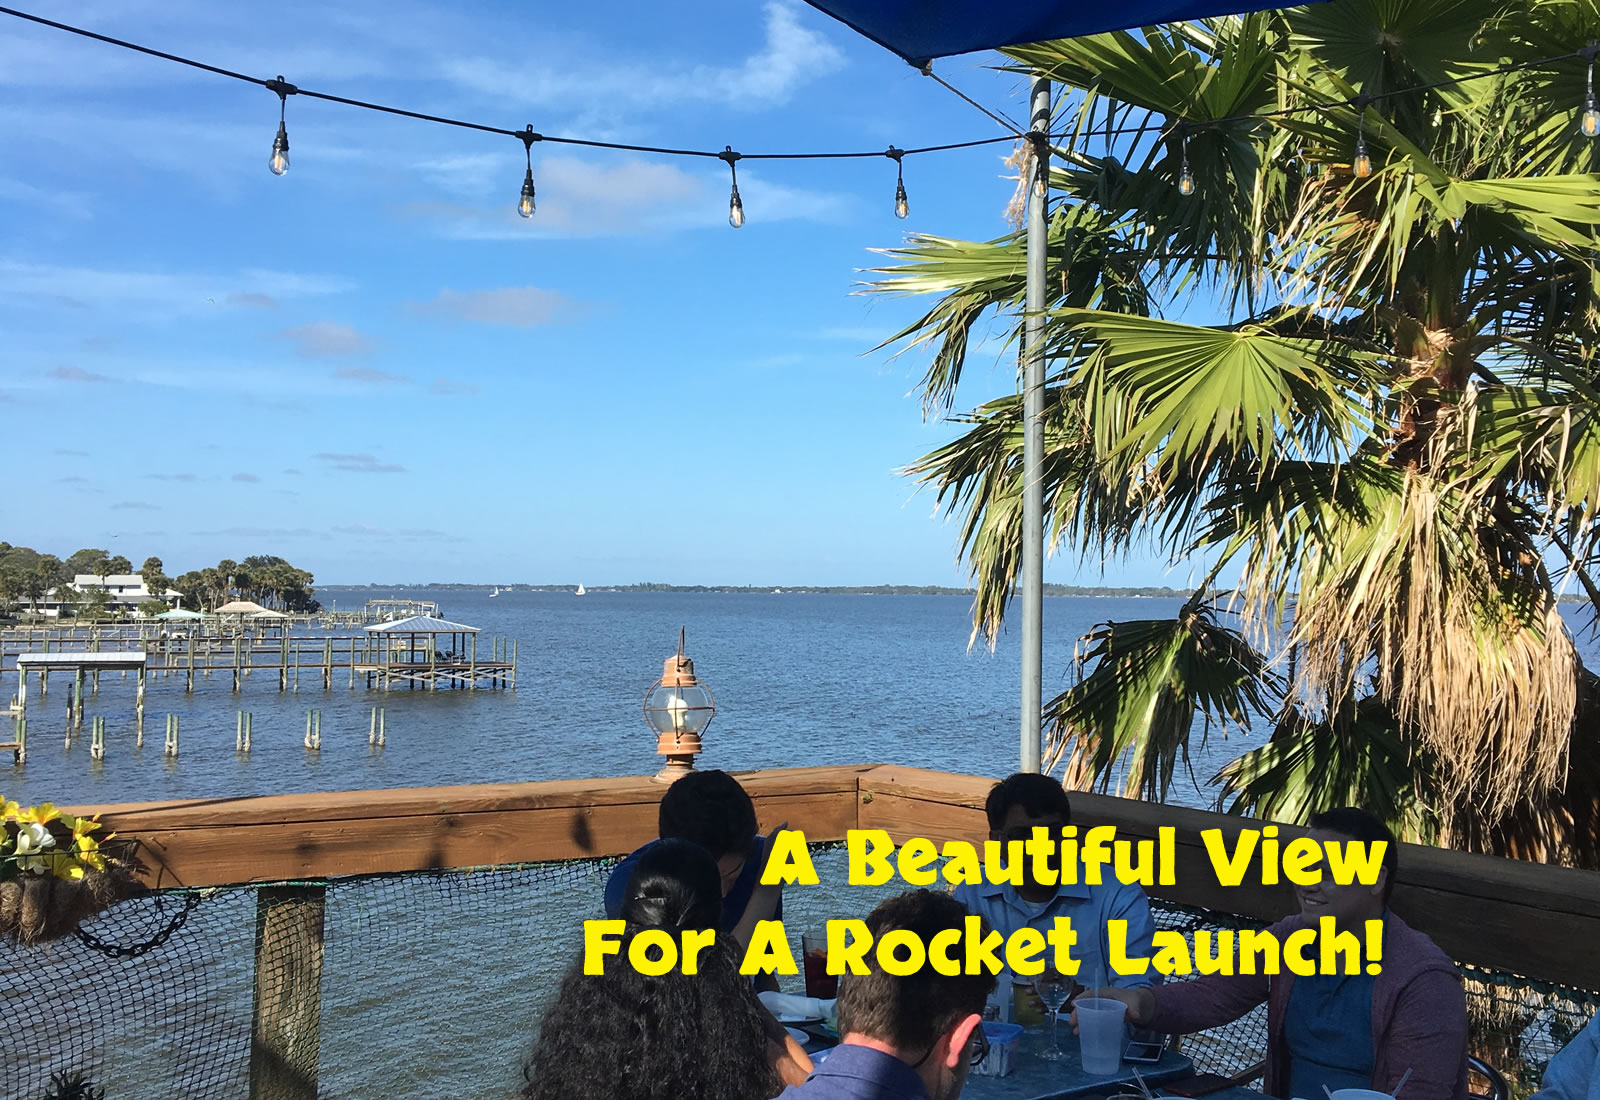 A beautiful Florida view for a rocket launch